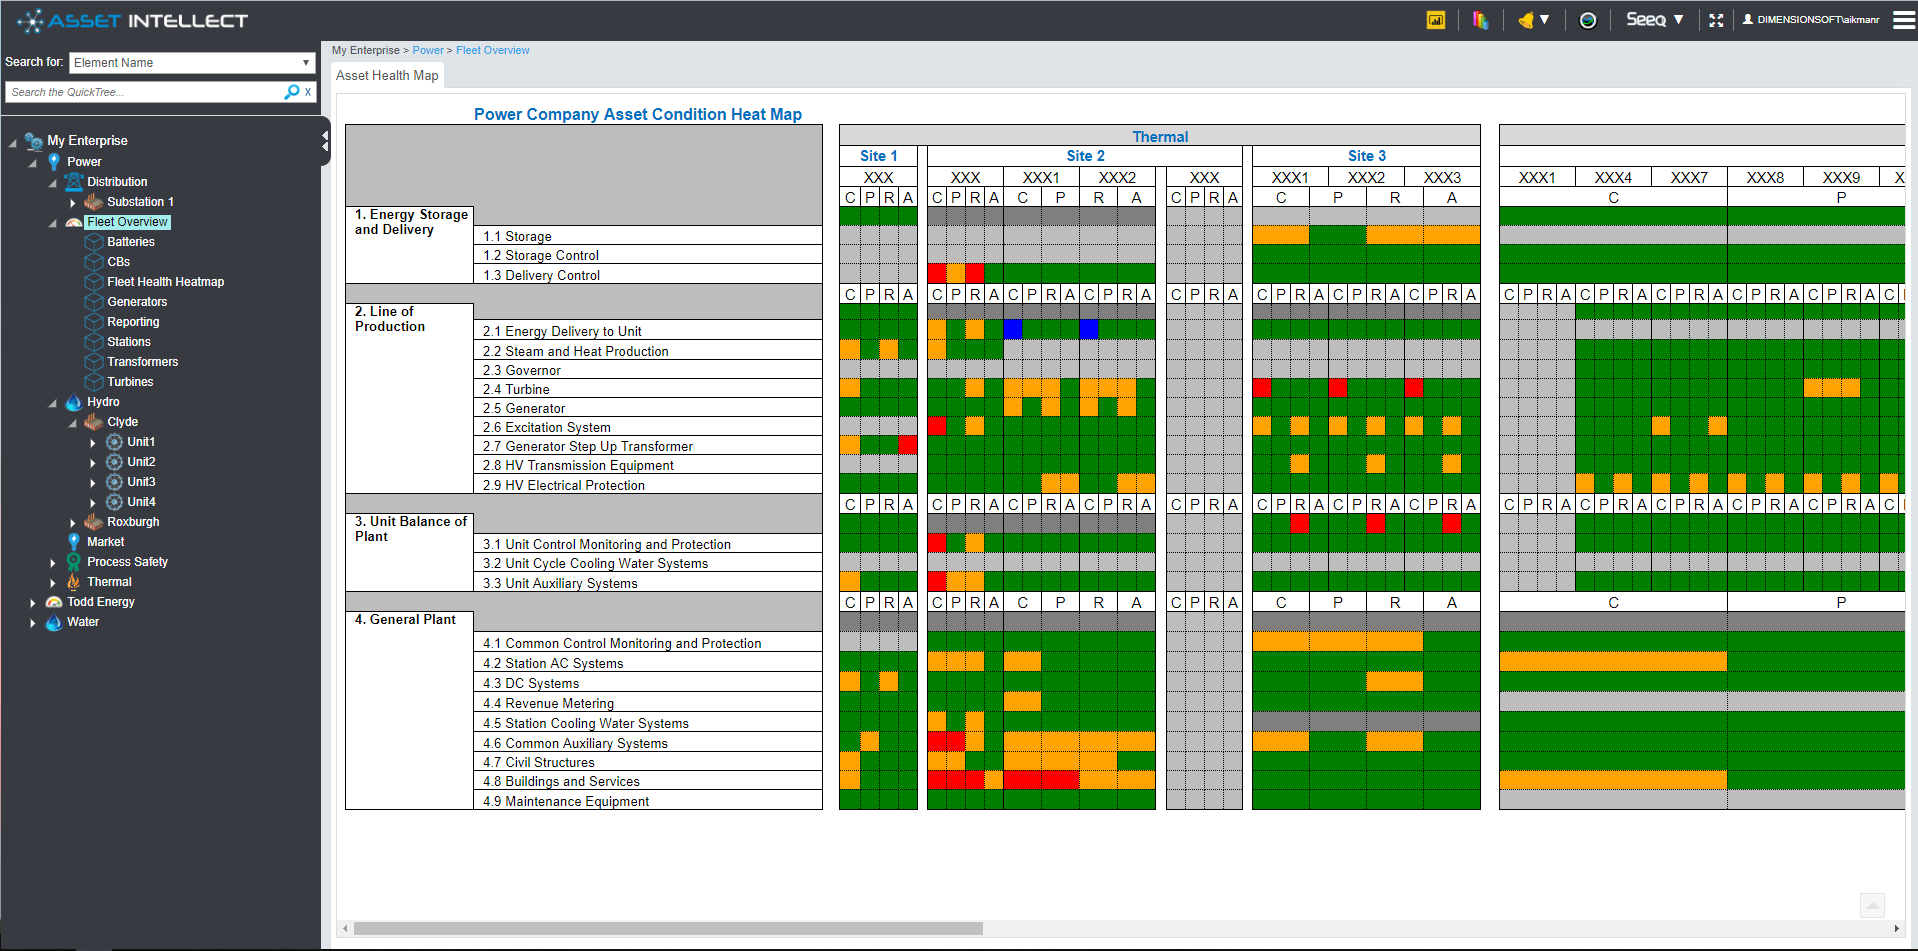 Asset Heat Map